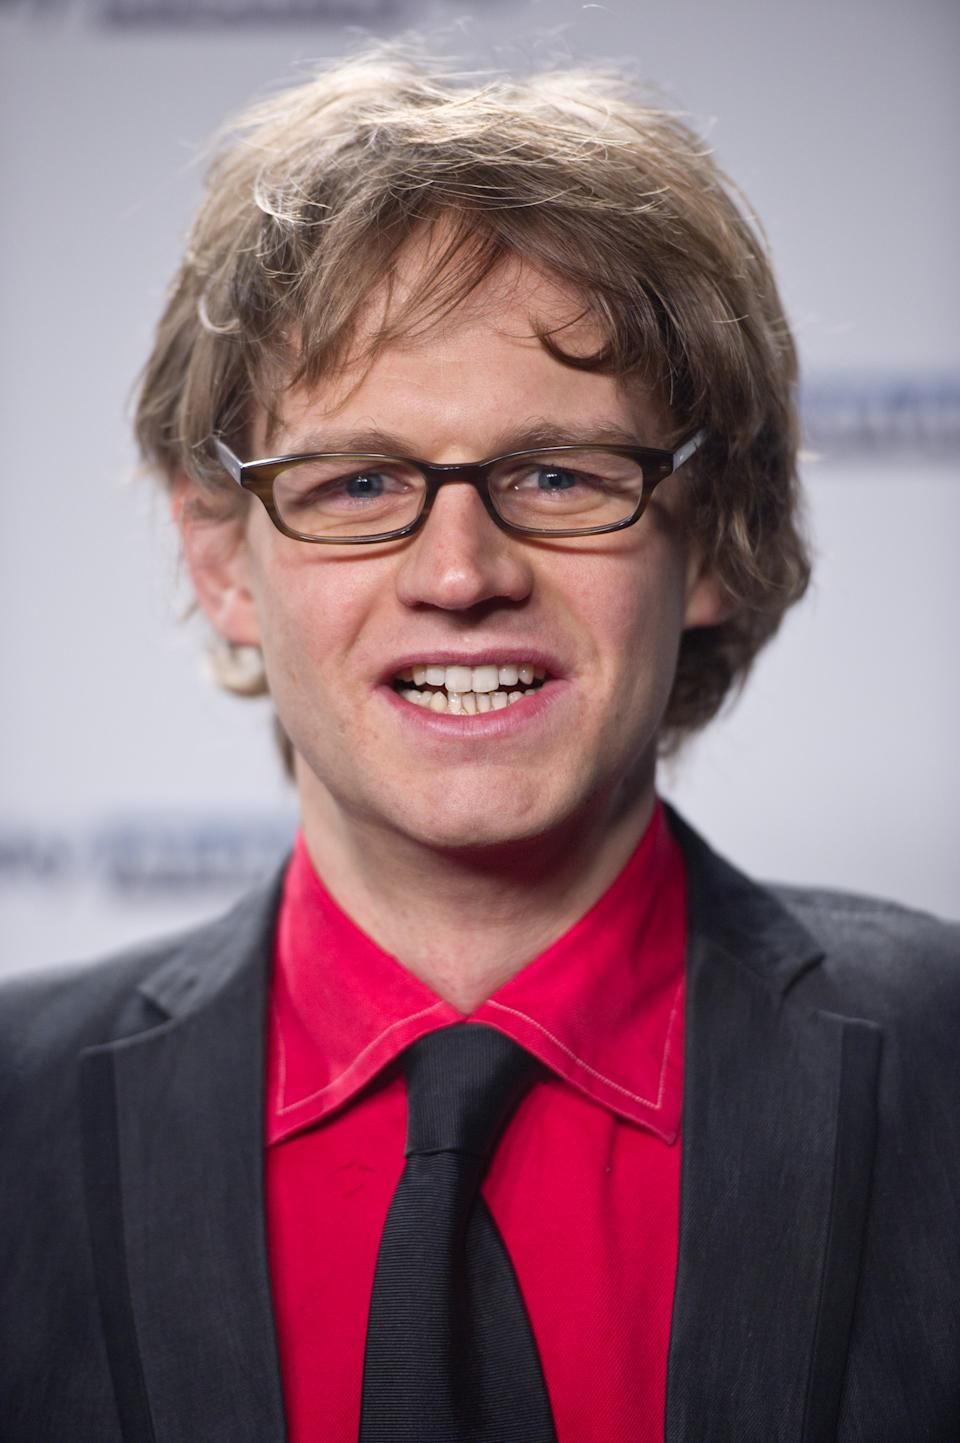 Mark Dolan promised his show 'won't be boring'. (Photo by Ian Gavan/Getty Images)